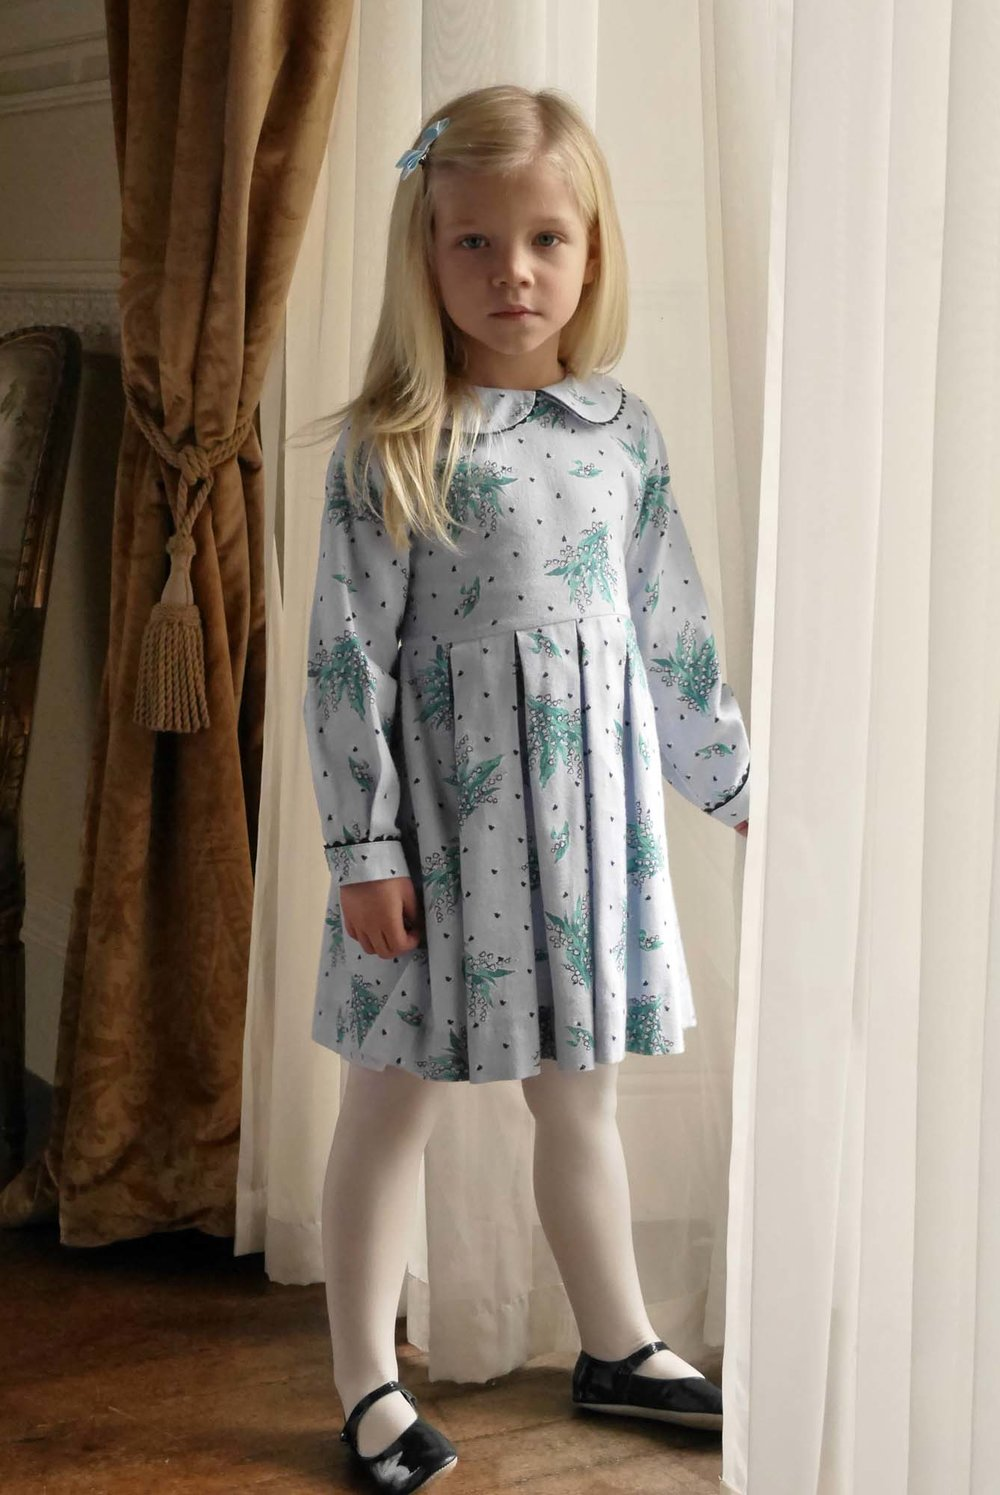 Les Petis Anges Children's Clothing Company in South West London Club Card 1.jpg